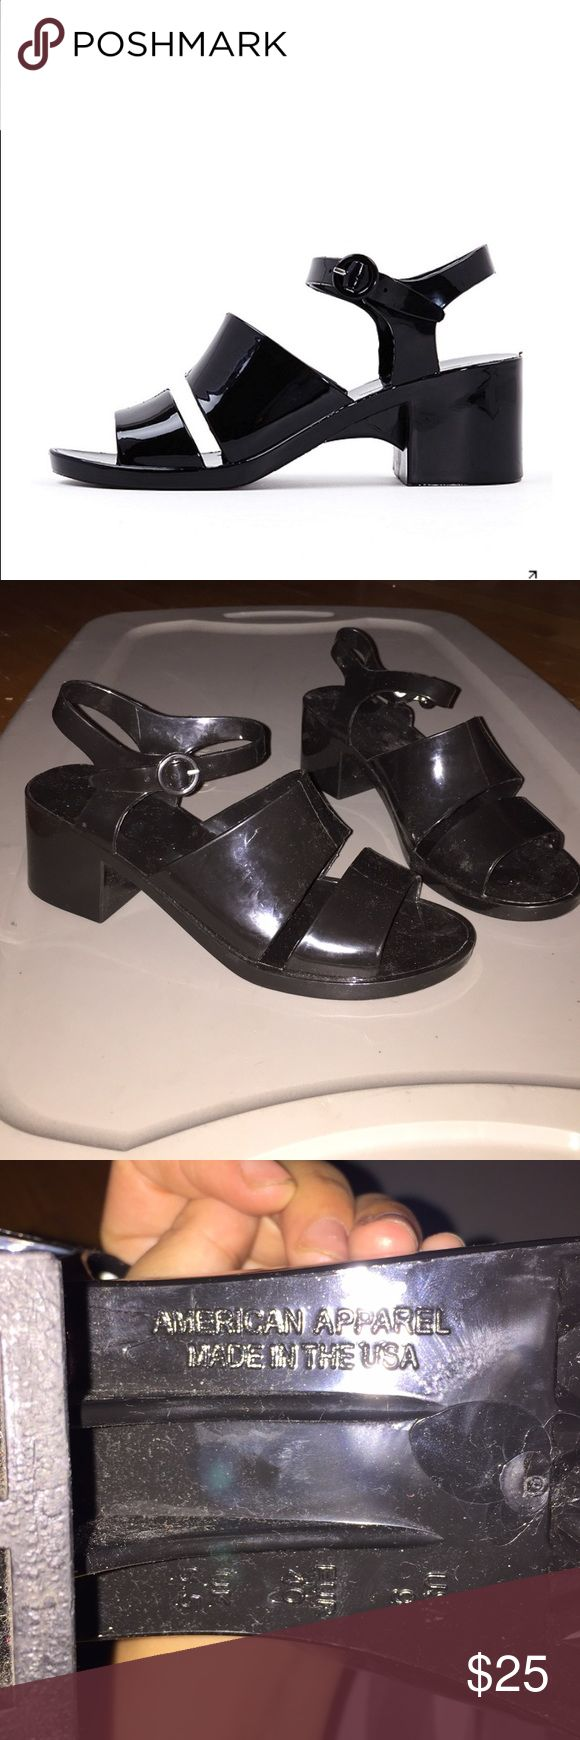 Black jelly sandals american apparel - American Apparel Black Jelly Heels Sold Out On The Aa Website Only Worn Once